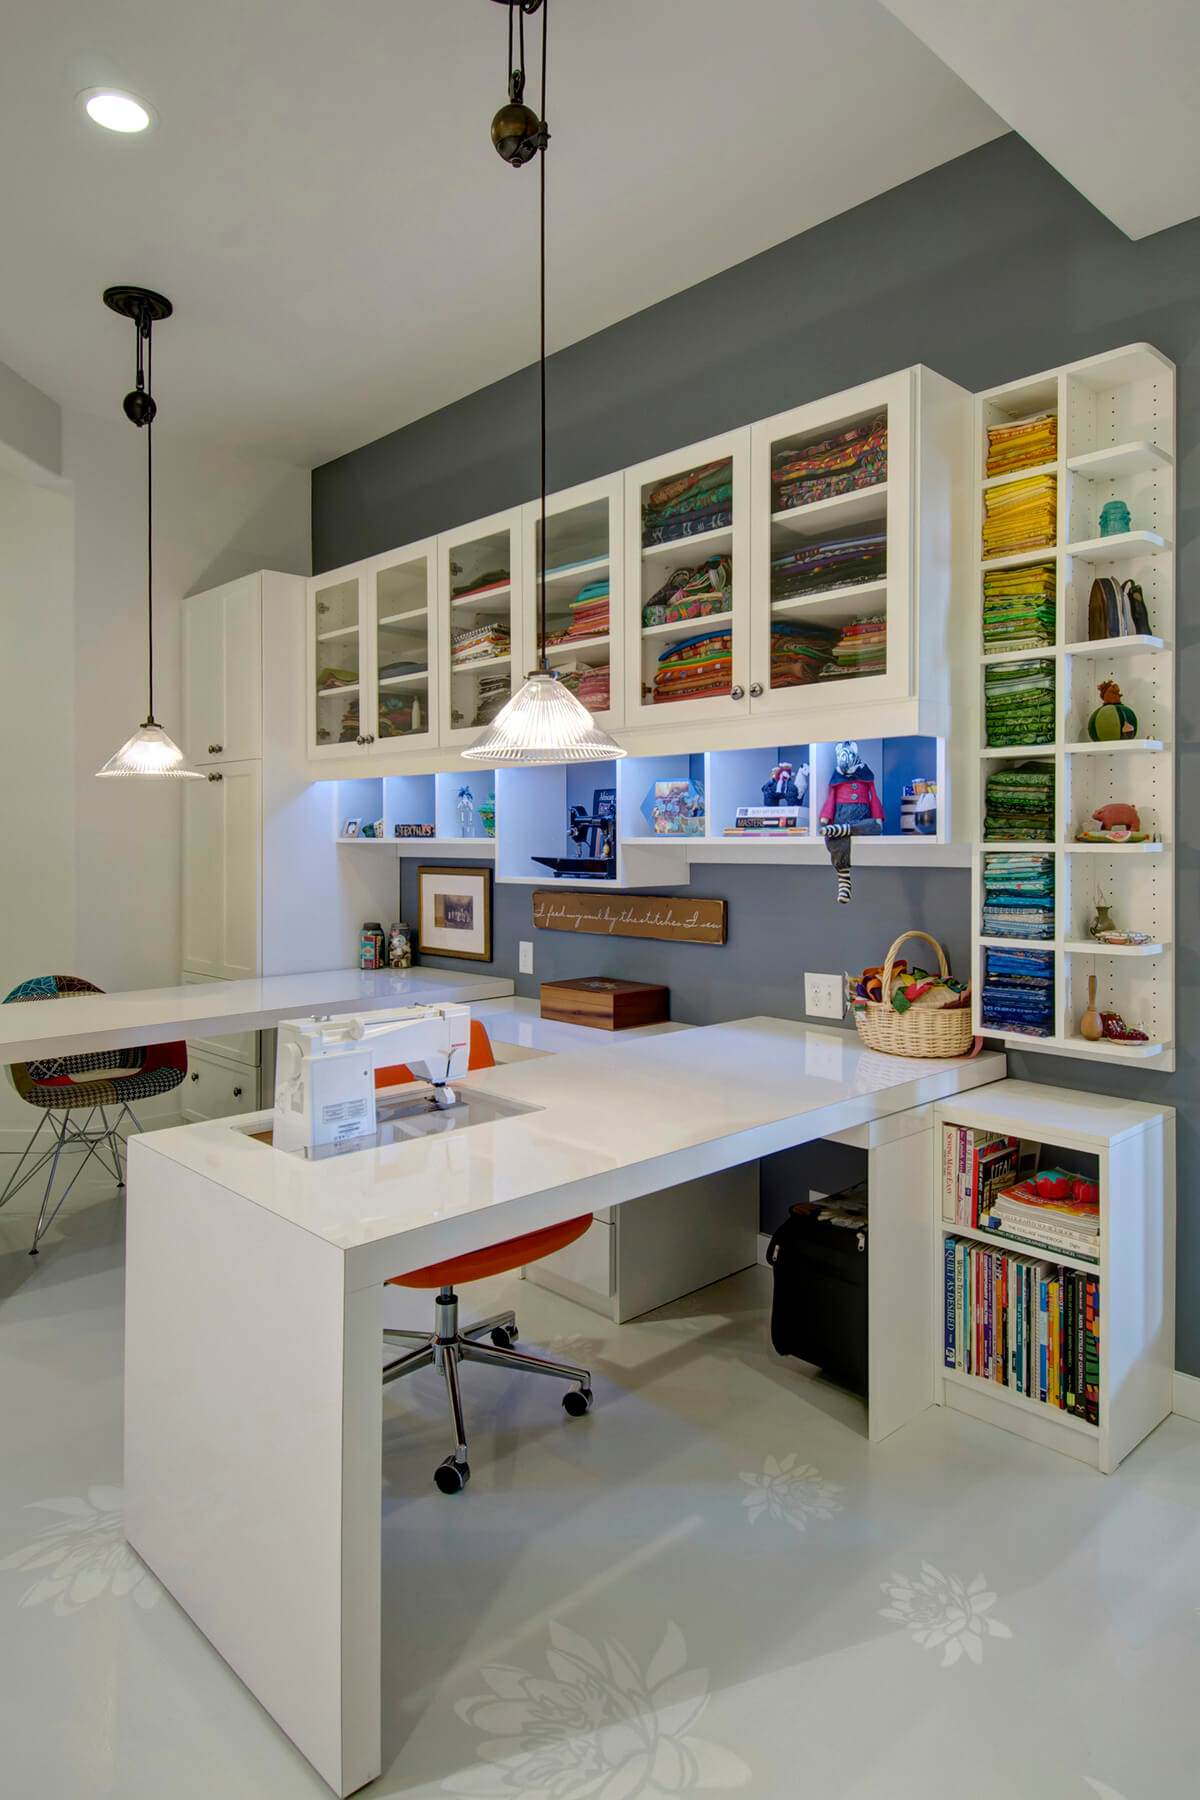 Ious Sewing Room In Contemporary Design Whit And Grey With Tall Ceilings